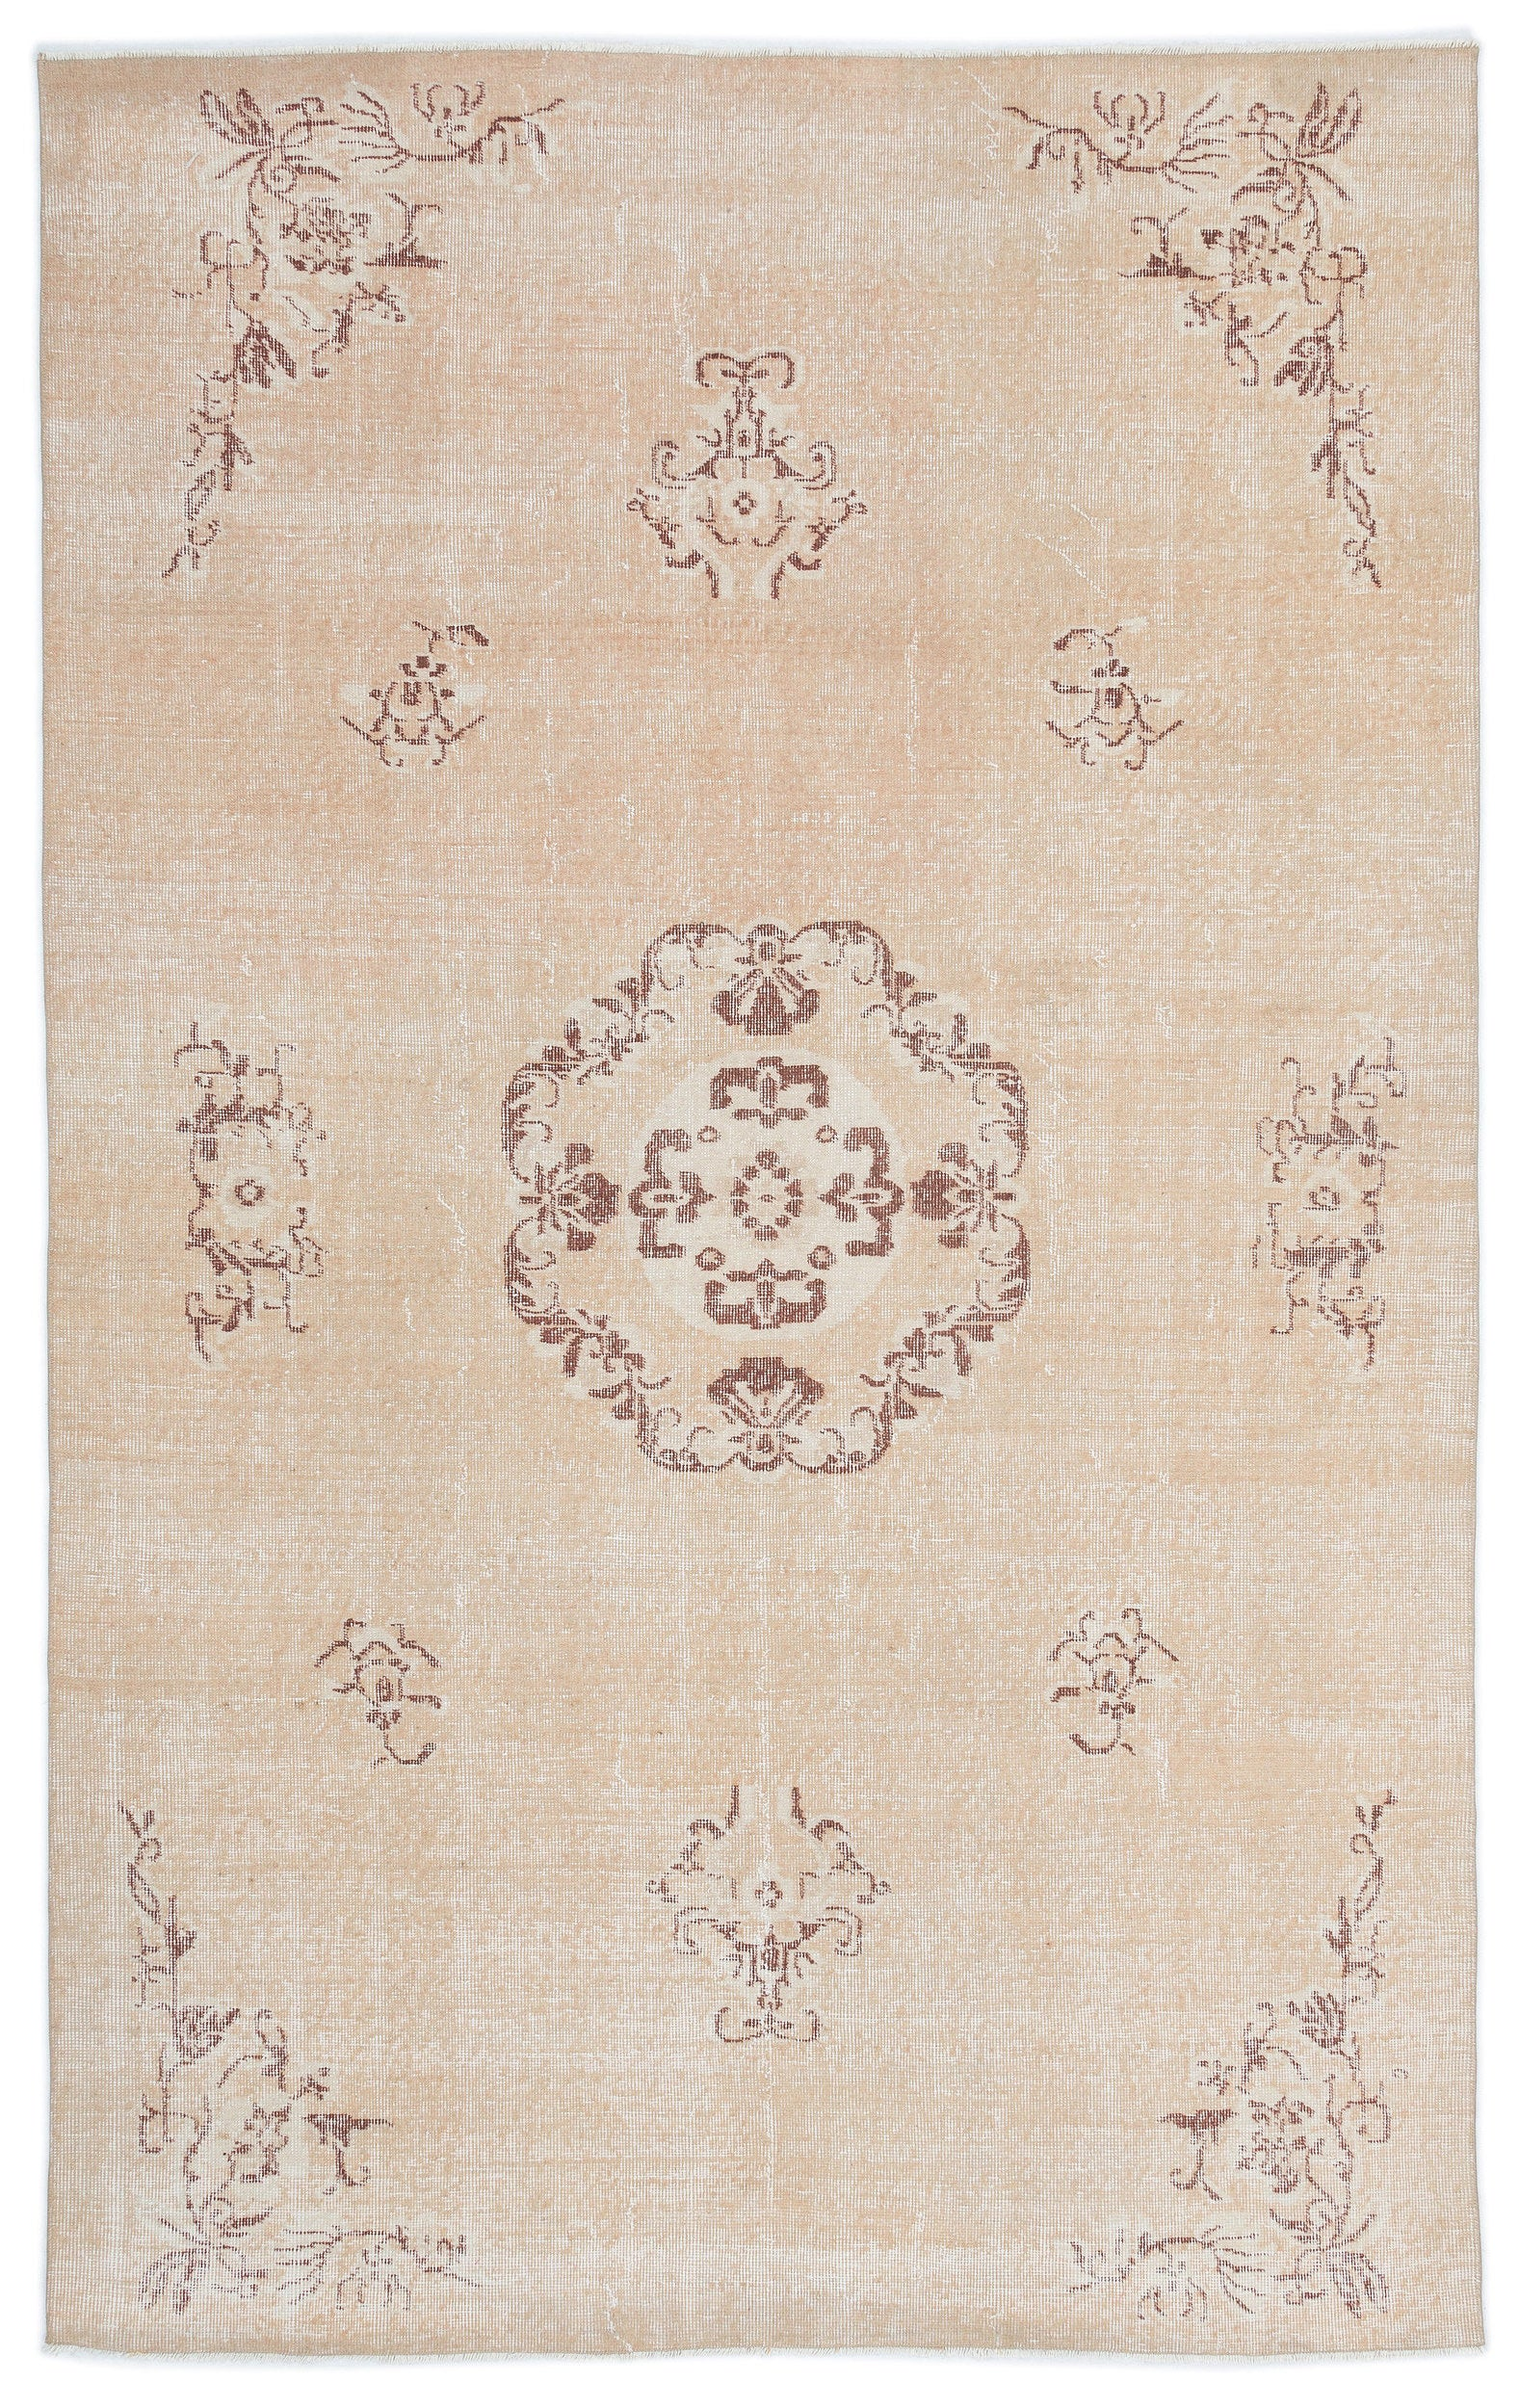 Retro Over Dyed Vintage Rug 5'10'' x 9'2'' ft 179 x 279 cm